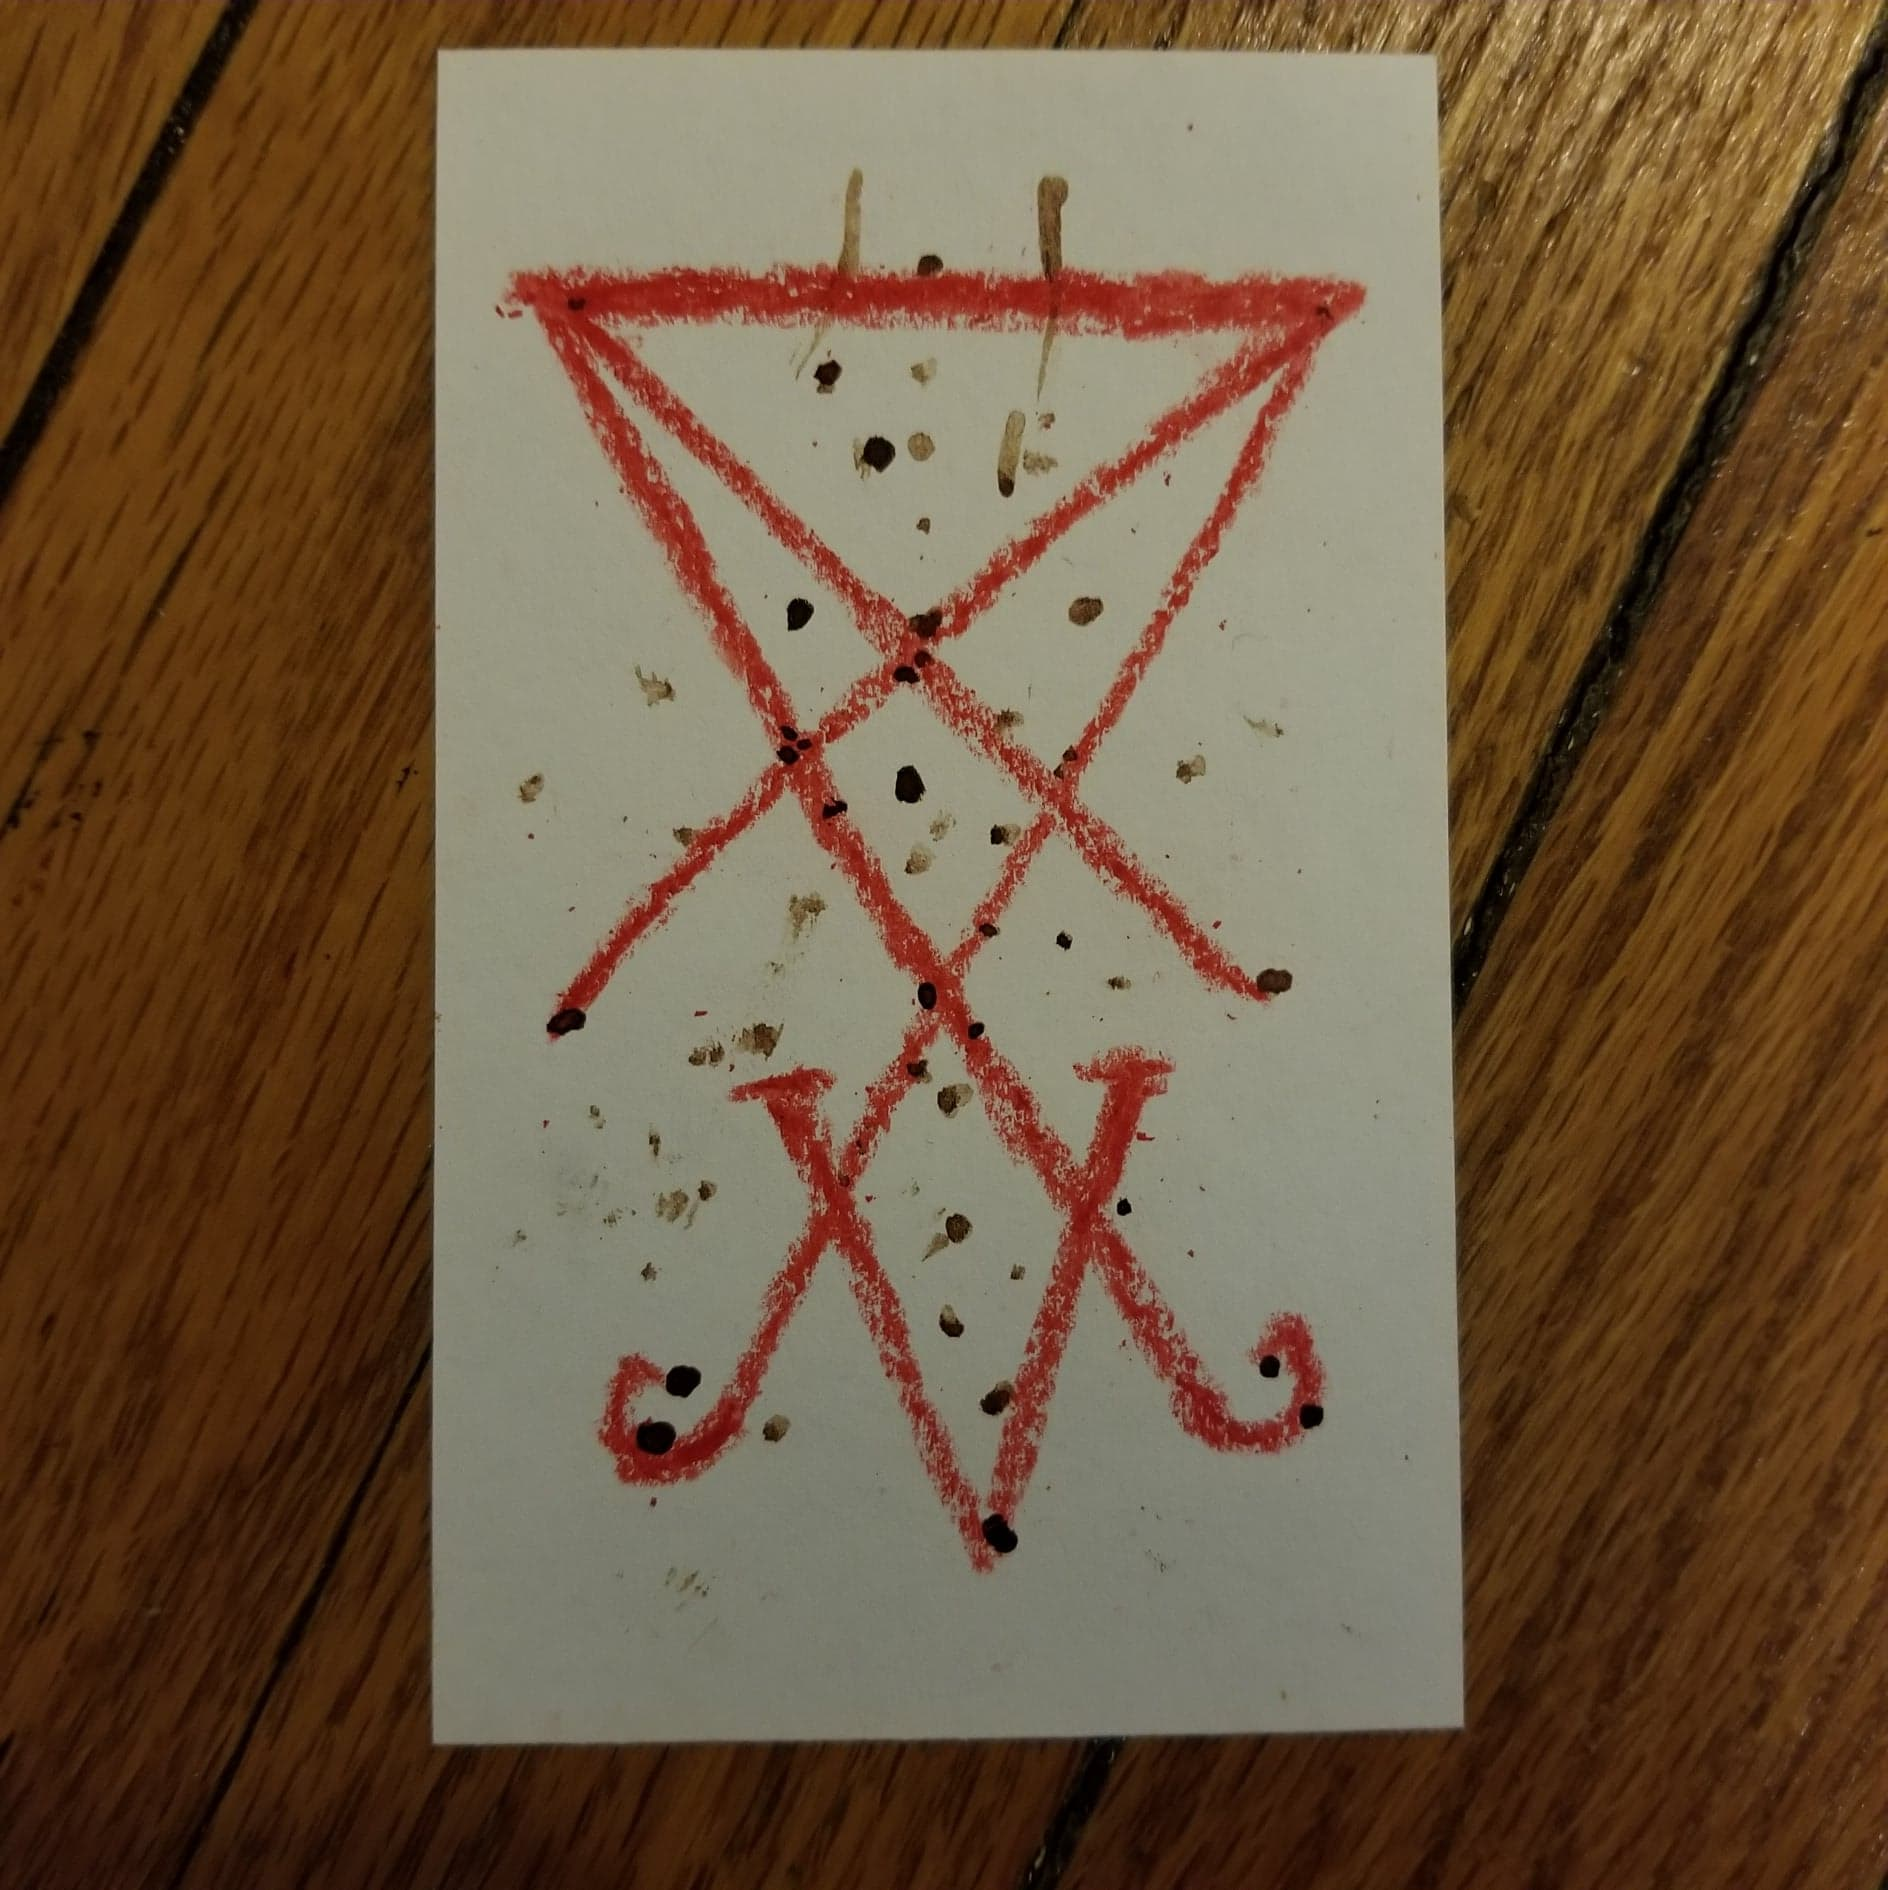 Lucifer's sigil used for blood magick. Links to a page about using blood magick for the left hand path occult practitioner.